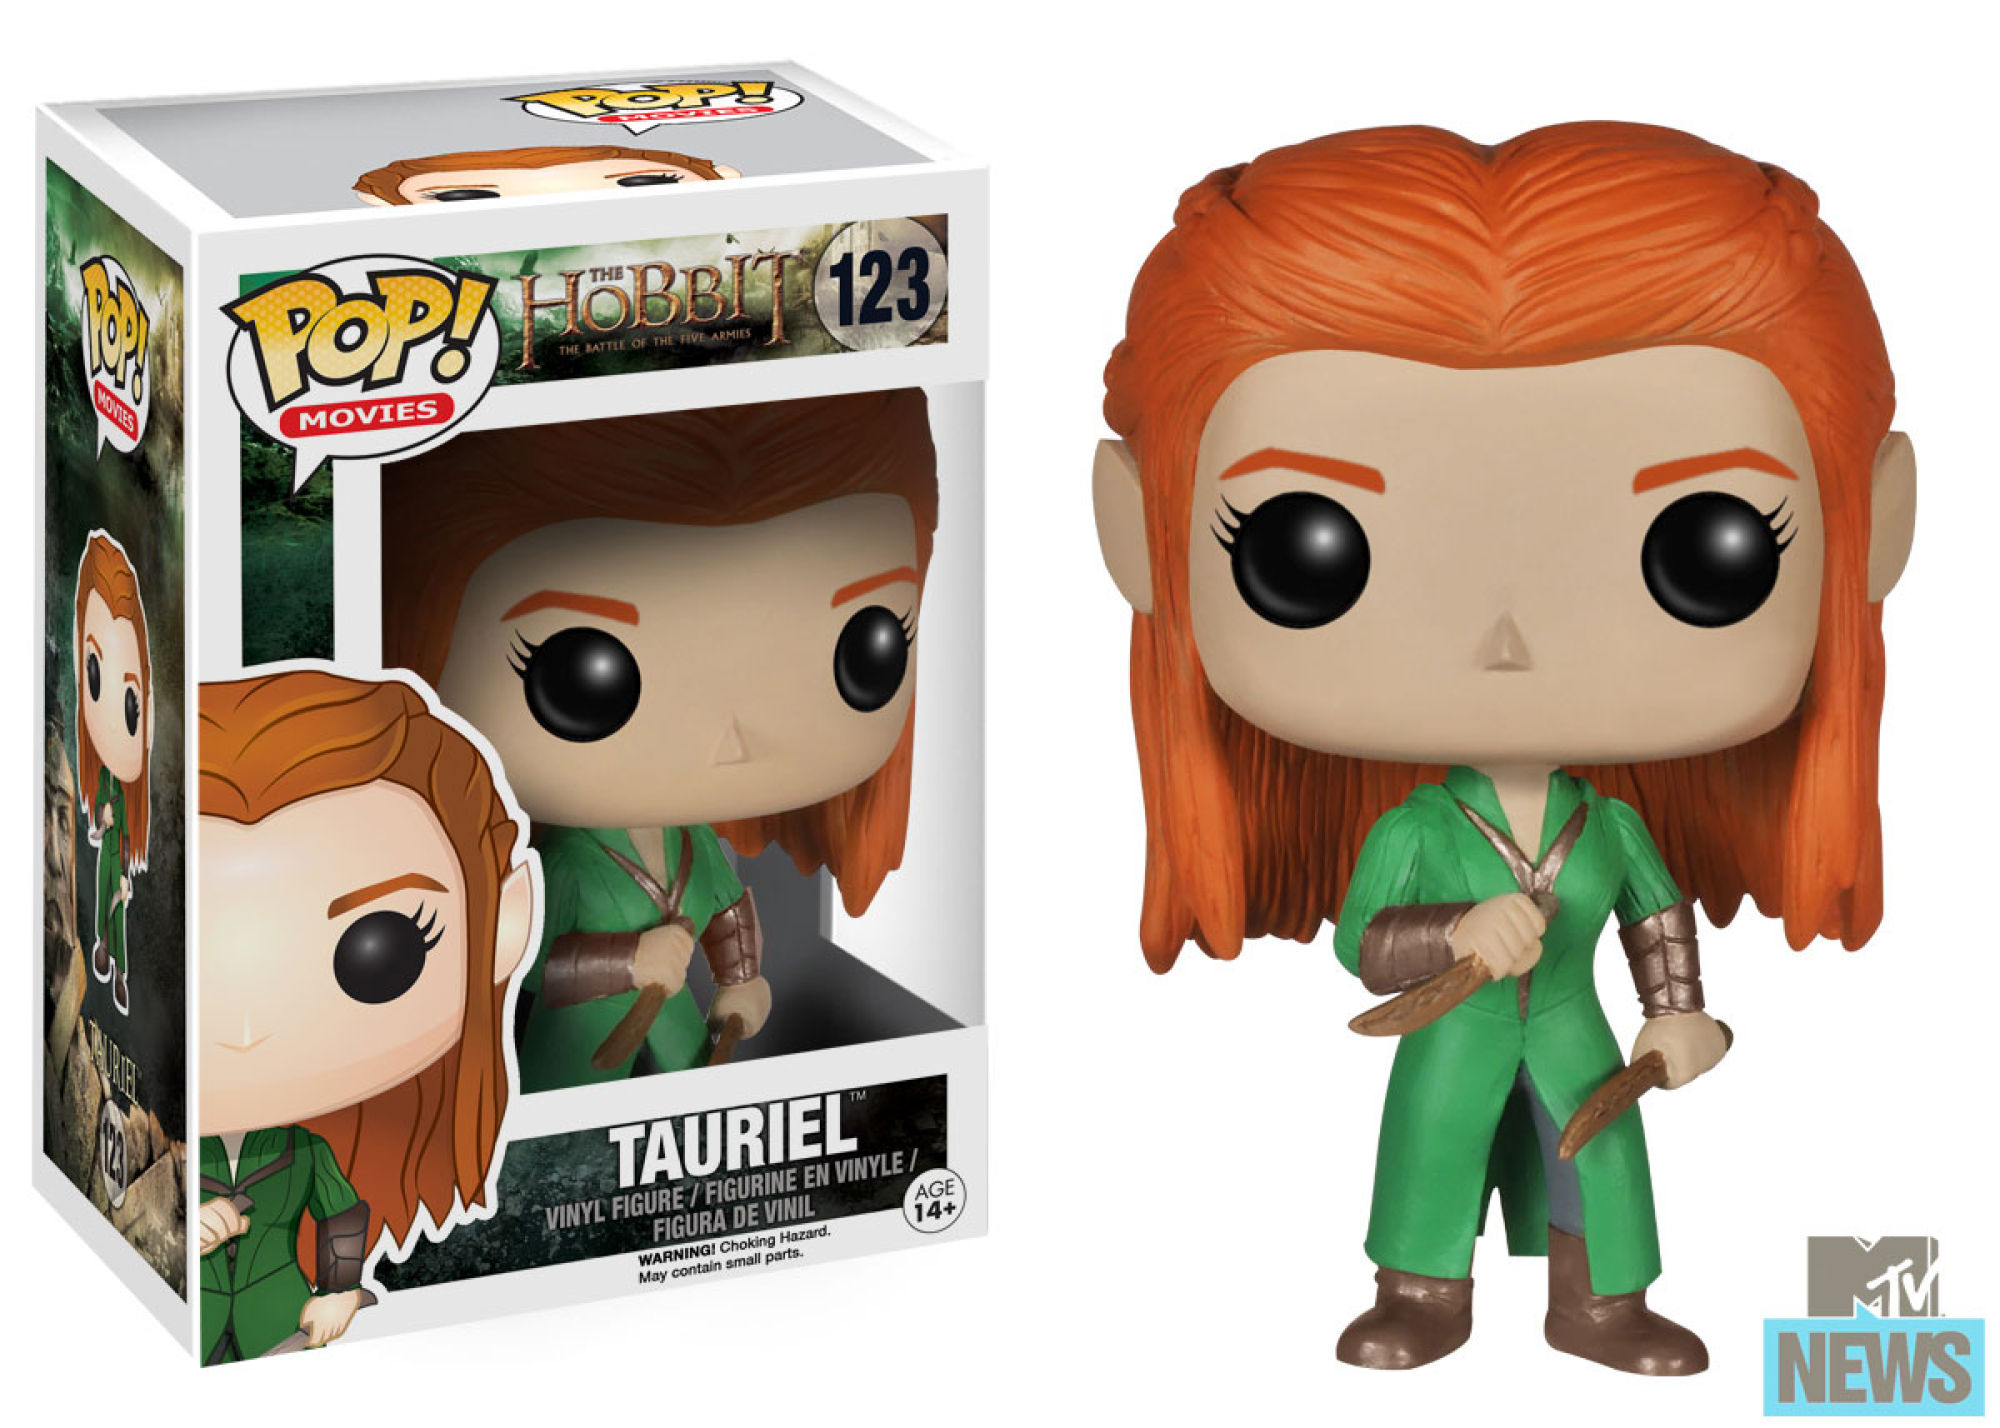 Smaug Sauron And Tauriel Join Hobbit Pop Vinyl Line Up